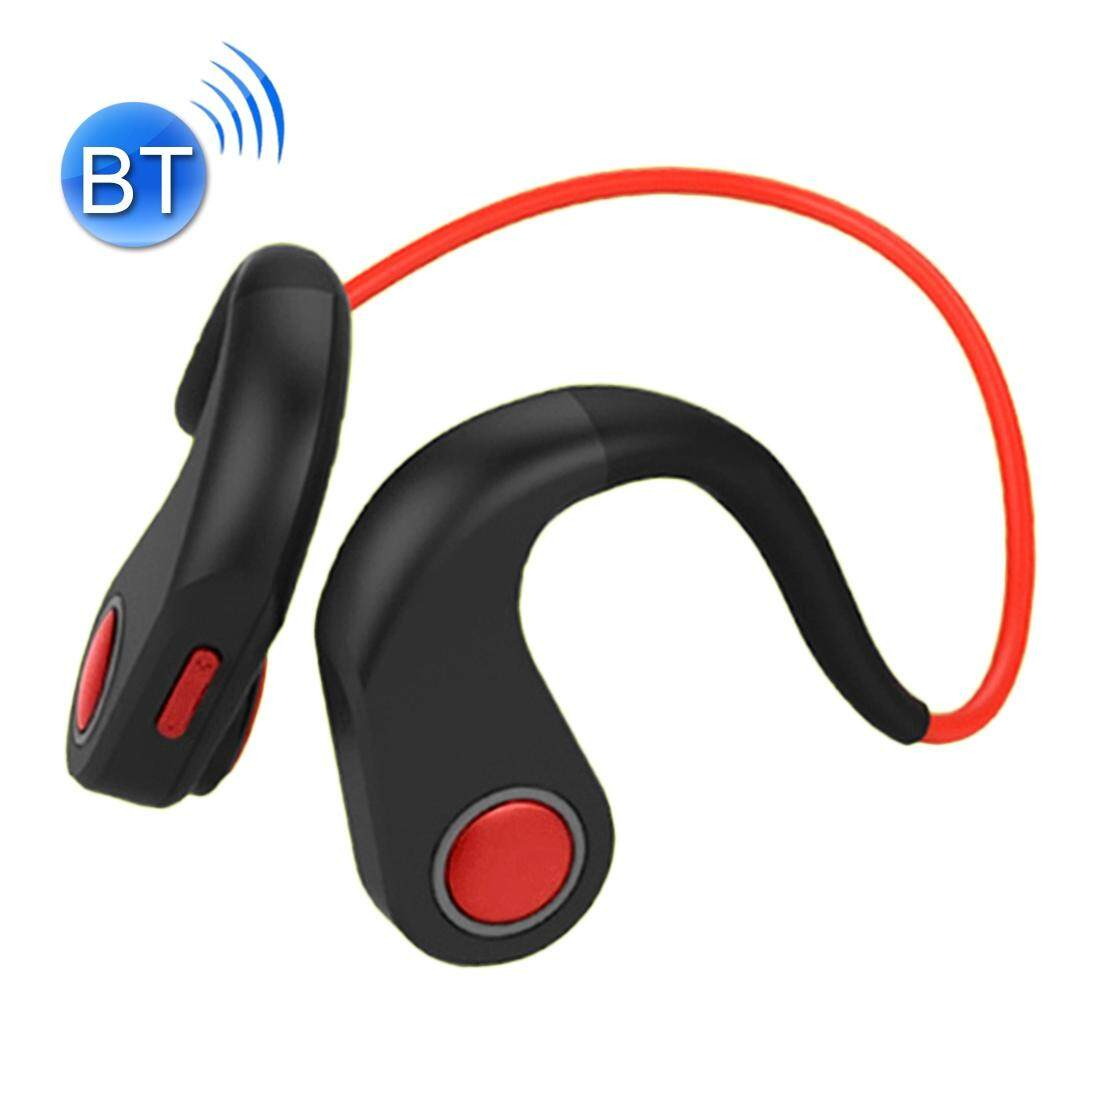 BT-DK Bone Conduction Bluetooth V4.1+EDR Sports Over the Ear Headphone Headset with Mic, Support NFC, For iPhone, Samsung, Huawei, Xiaomi, HTC and Other Smart Phones or Other Bluetooth Audio Devices (Red)